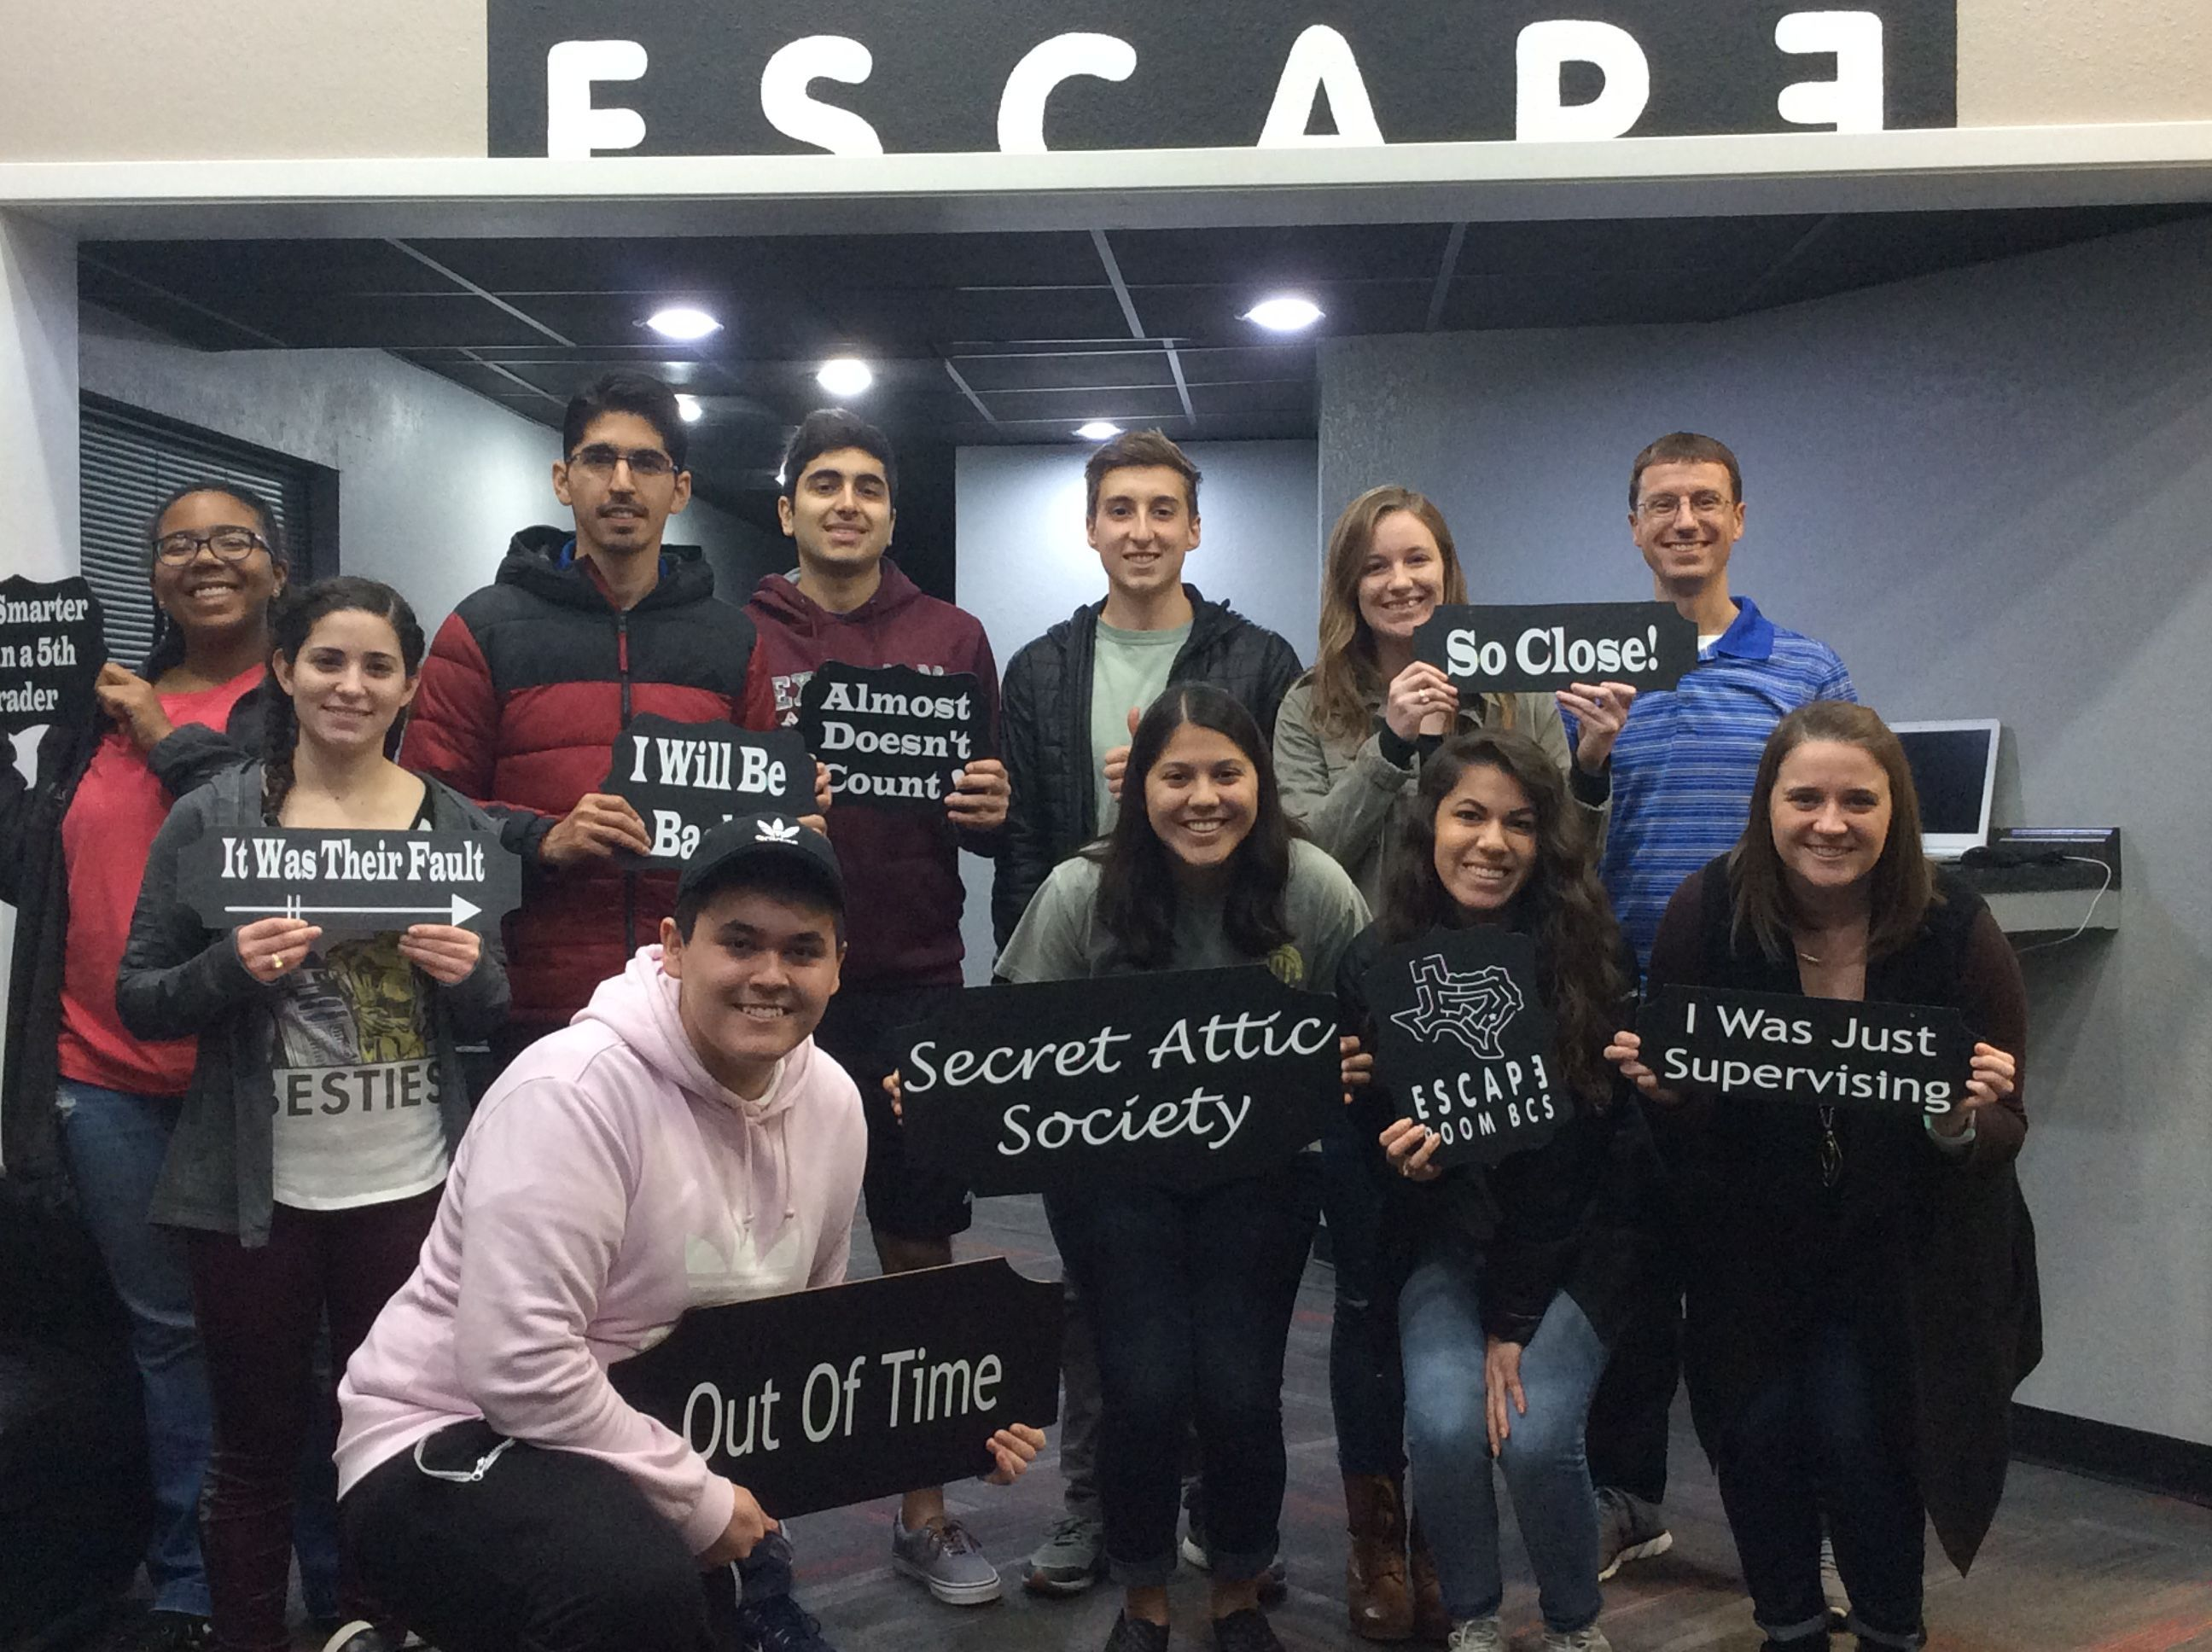 These Hopeful Secret Attic Society Members Better Try Their Luck Next Time The Secret Broadway Shows Society